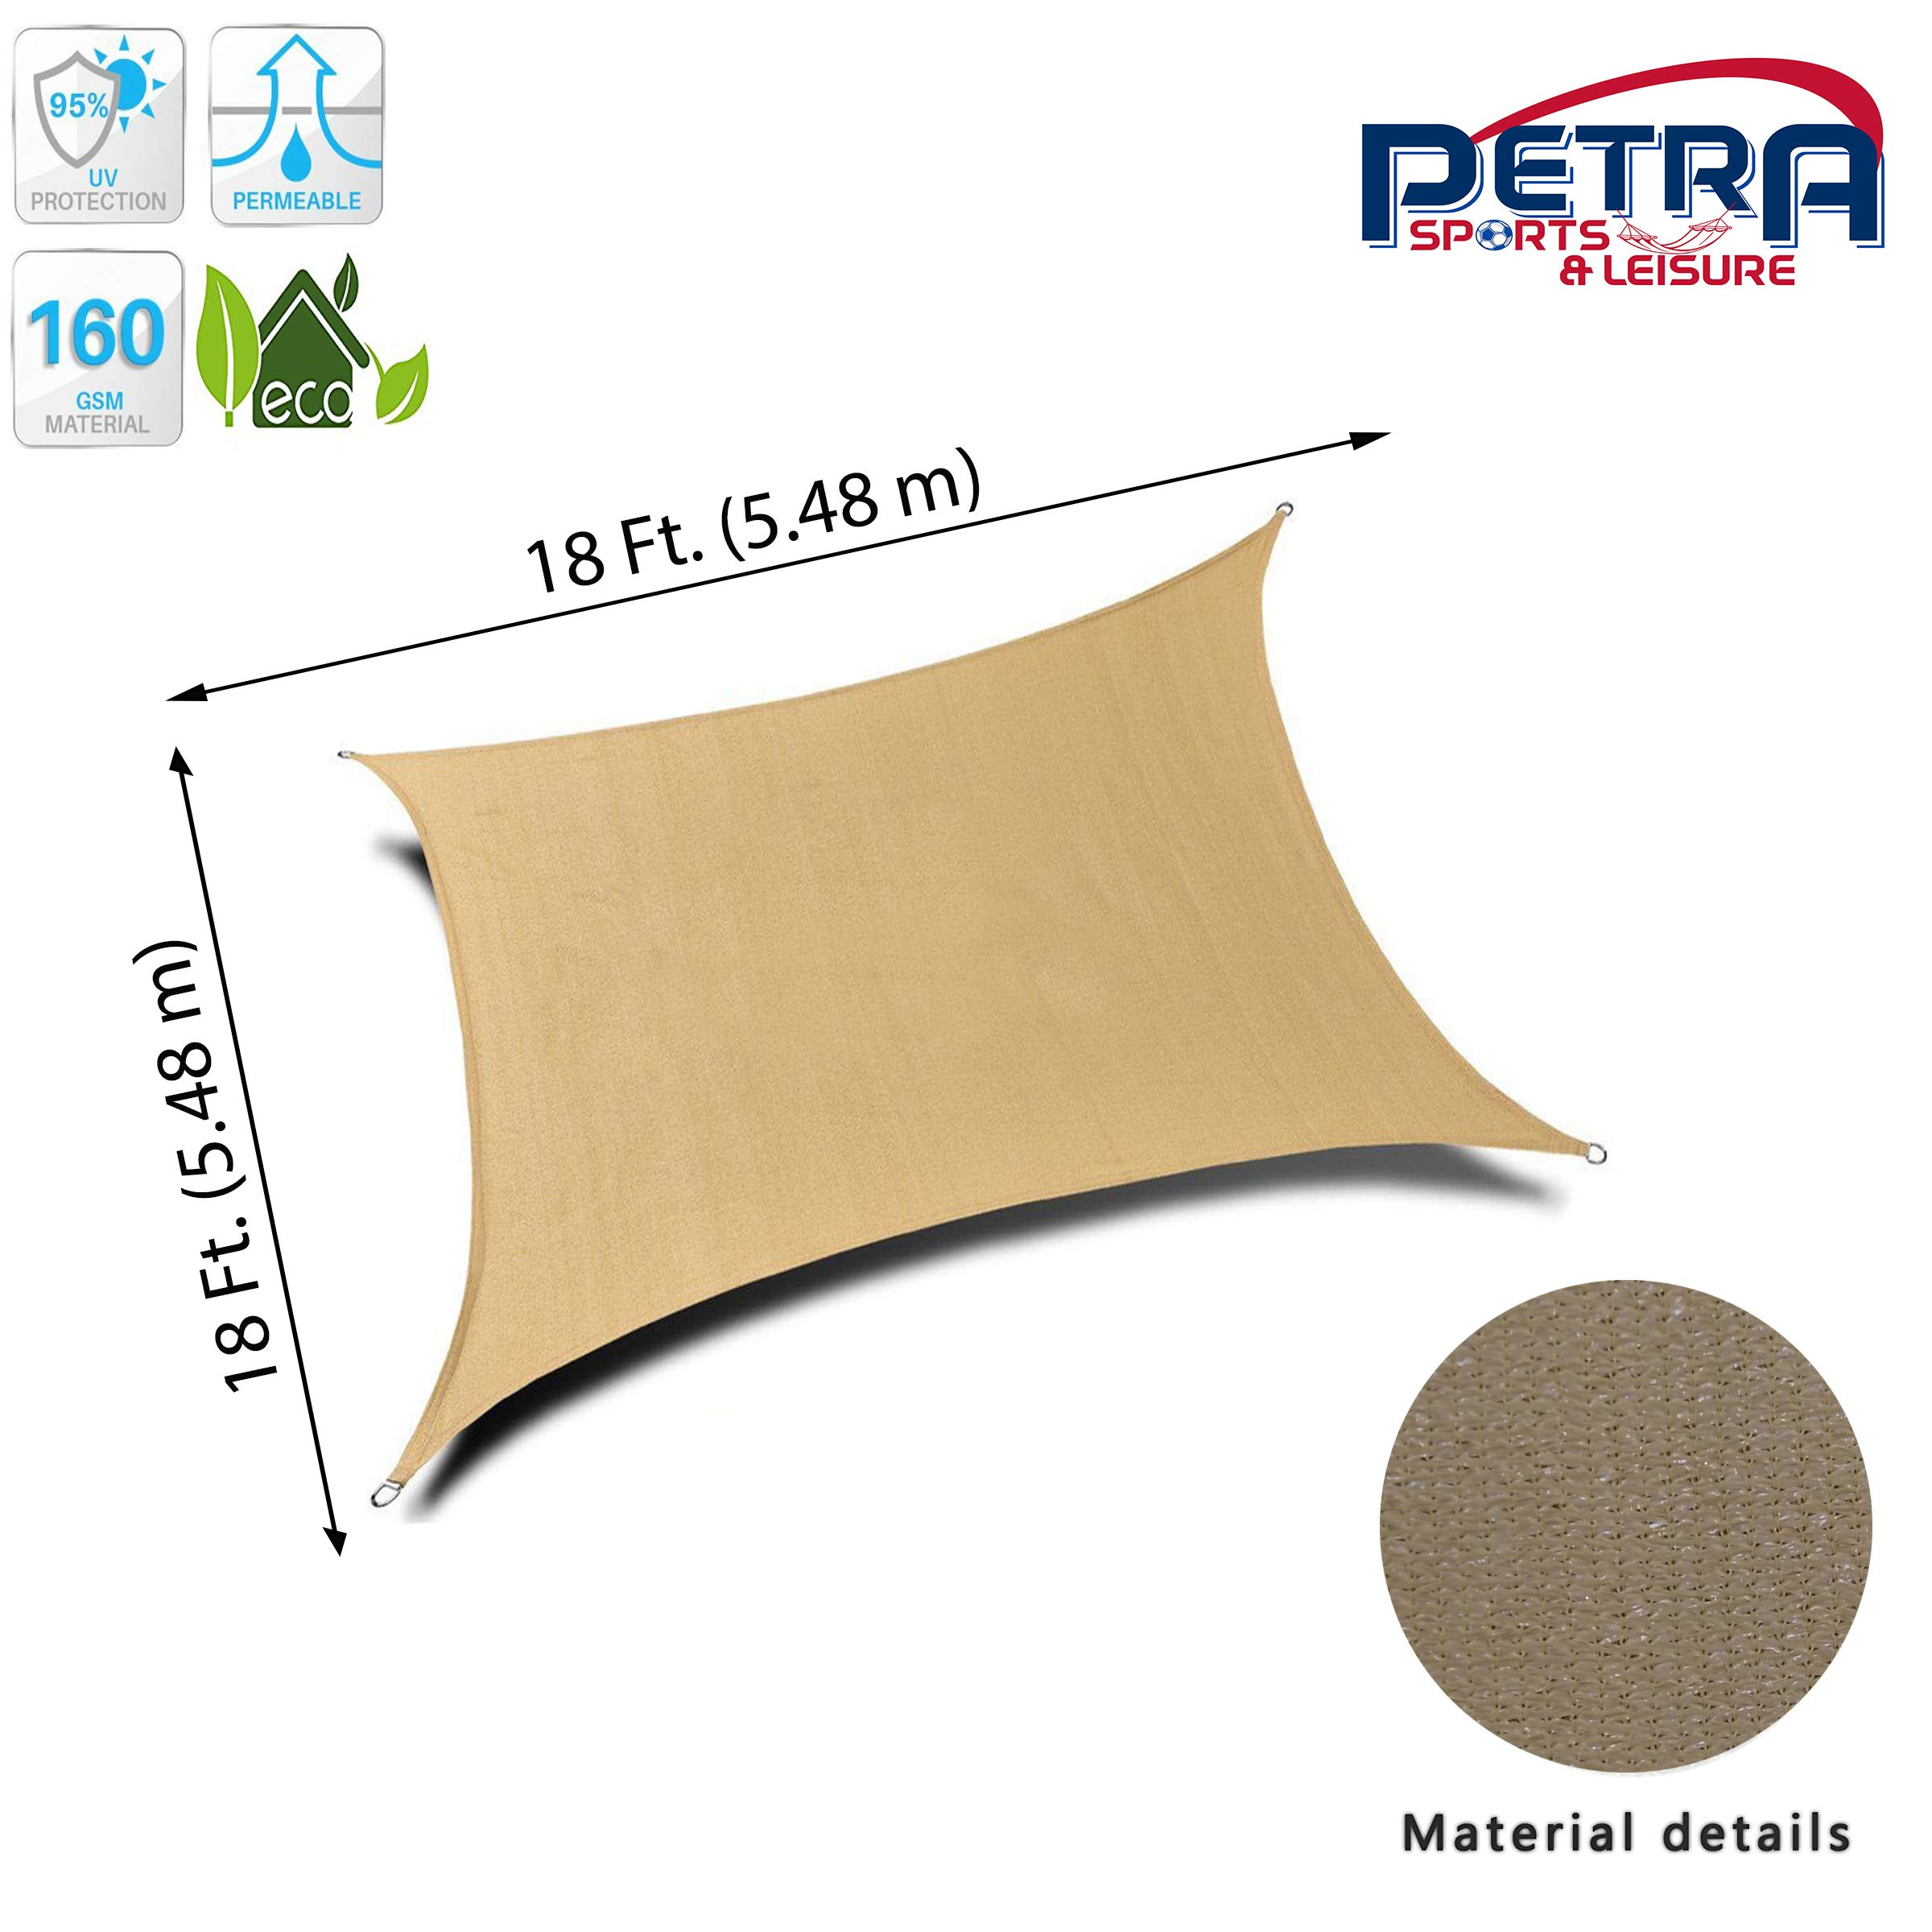 Petra's 18 Ft. X 18 Ft. Square Sun Sail Shade. Durable Woven Outdoor Patio Fabric w/Up To 90% UV Protection. 18x18 Foot. (Desert Sand)